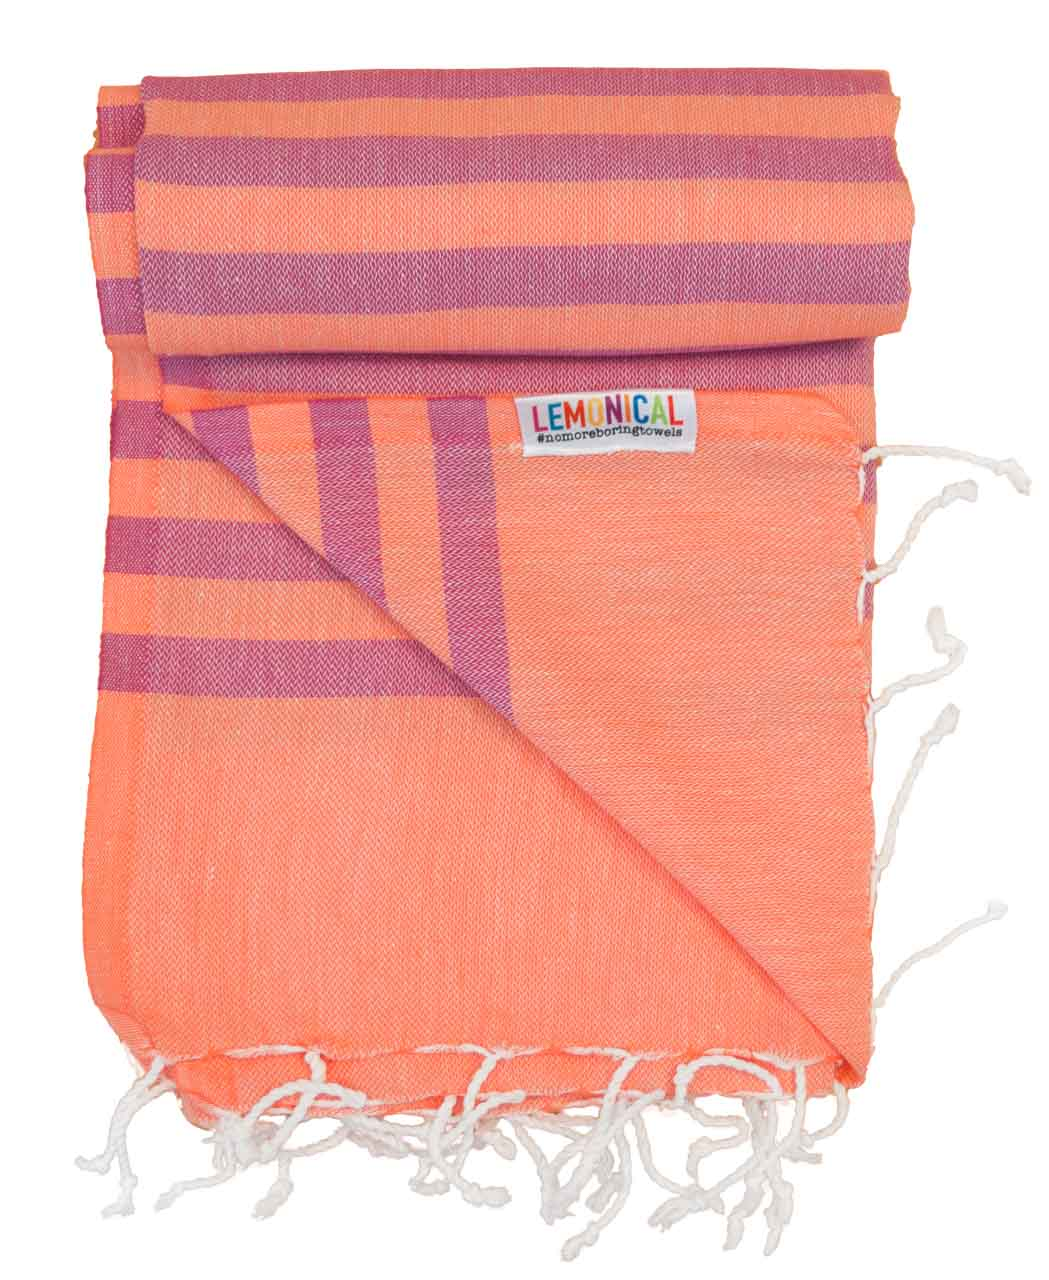 SUNSET MOJITO BEACH TOWEL LEMONICAL